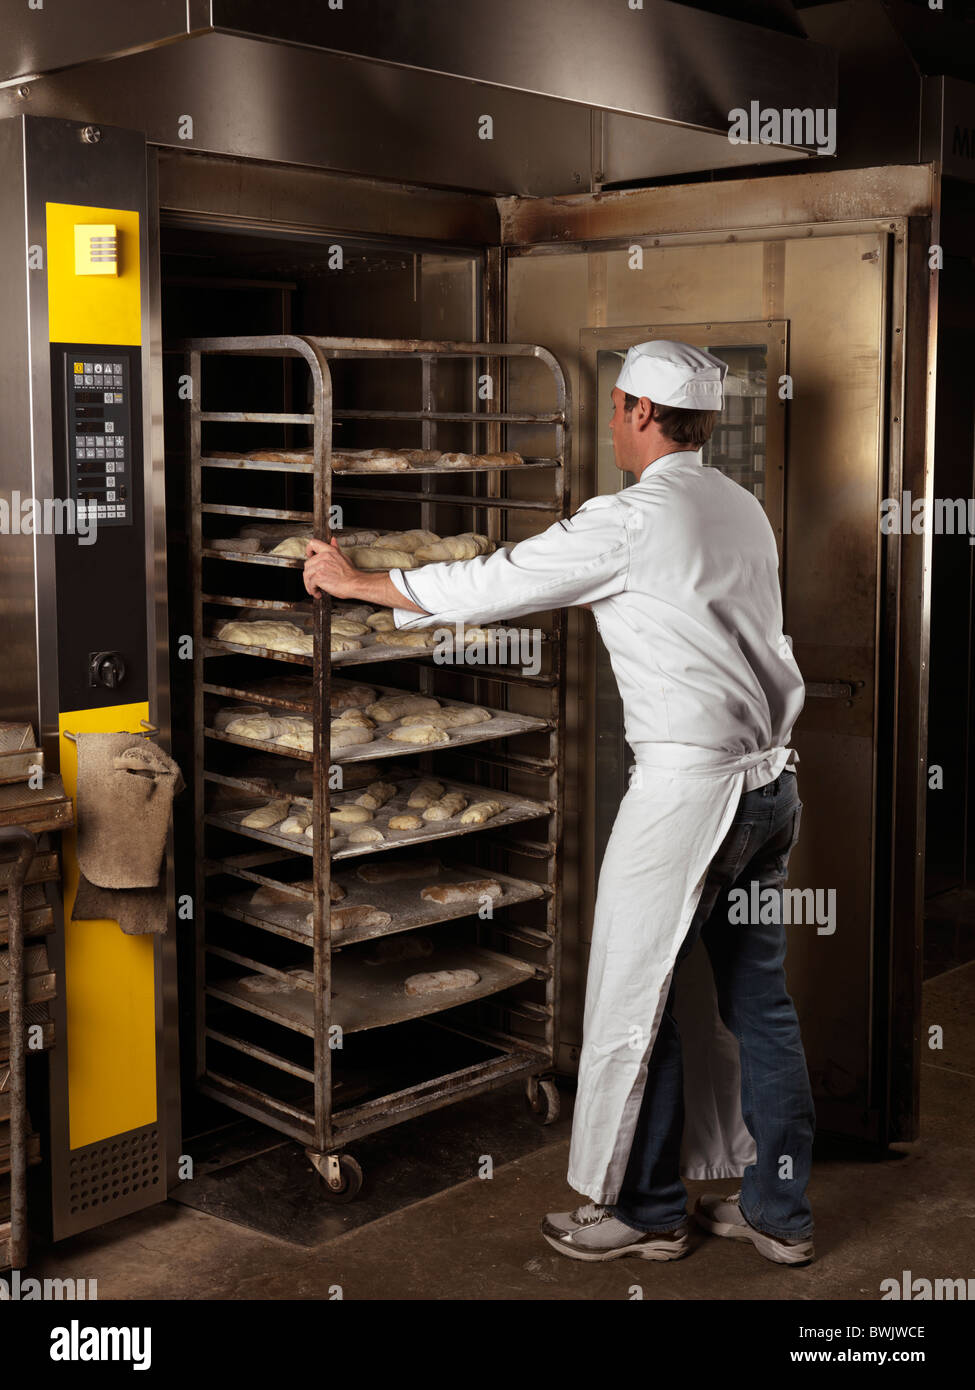 Baker rolling in a rack trolley with buns in a bakery oven - Stock Image